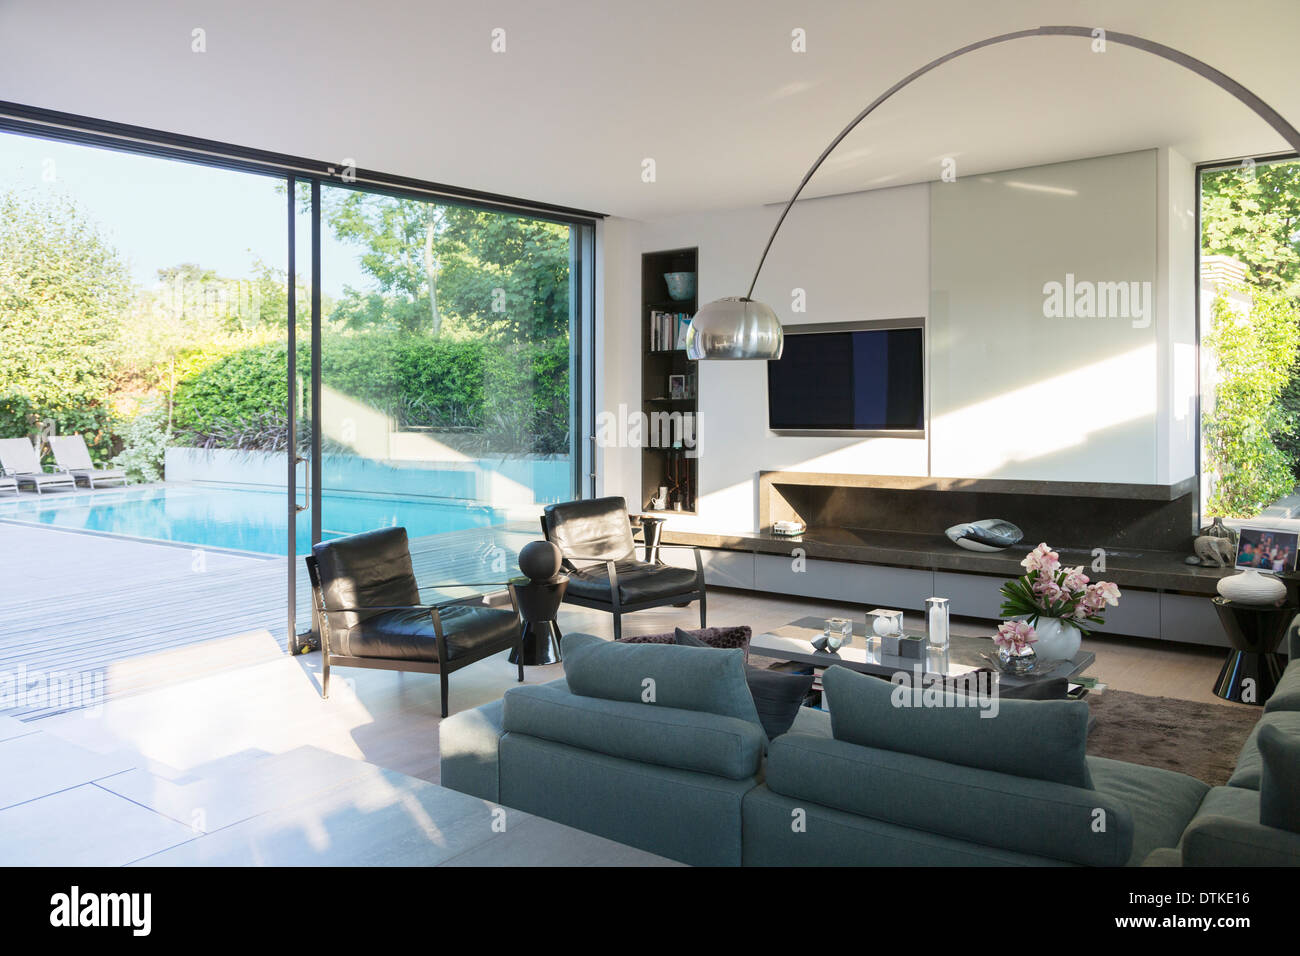 Modern Living Room Overlooking Patio With Swimming Pool Stock Photo Alamy